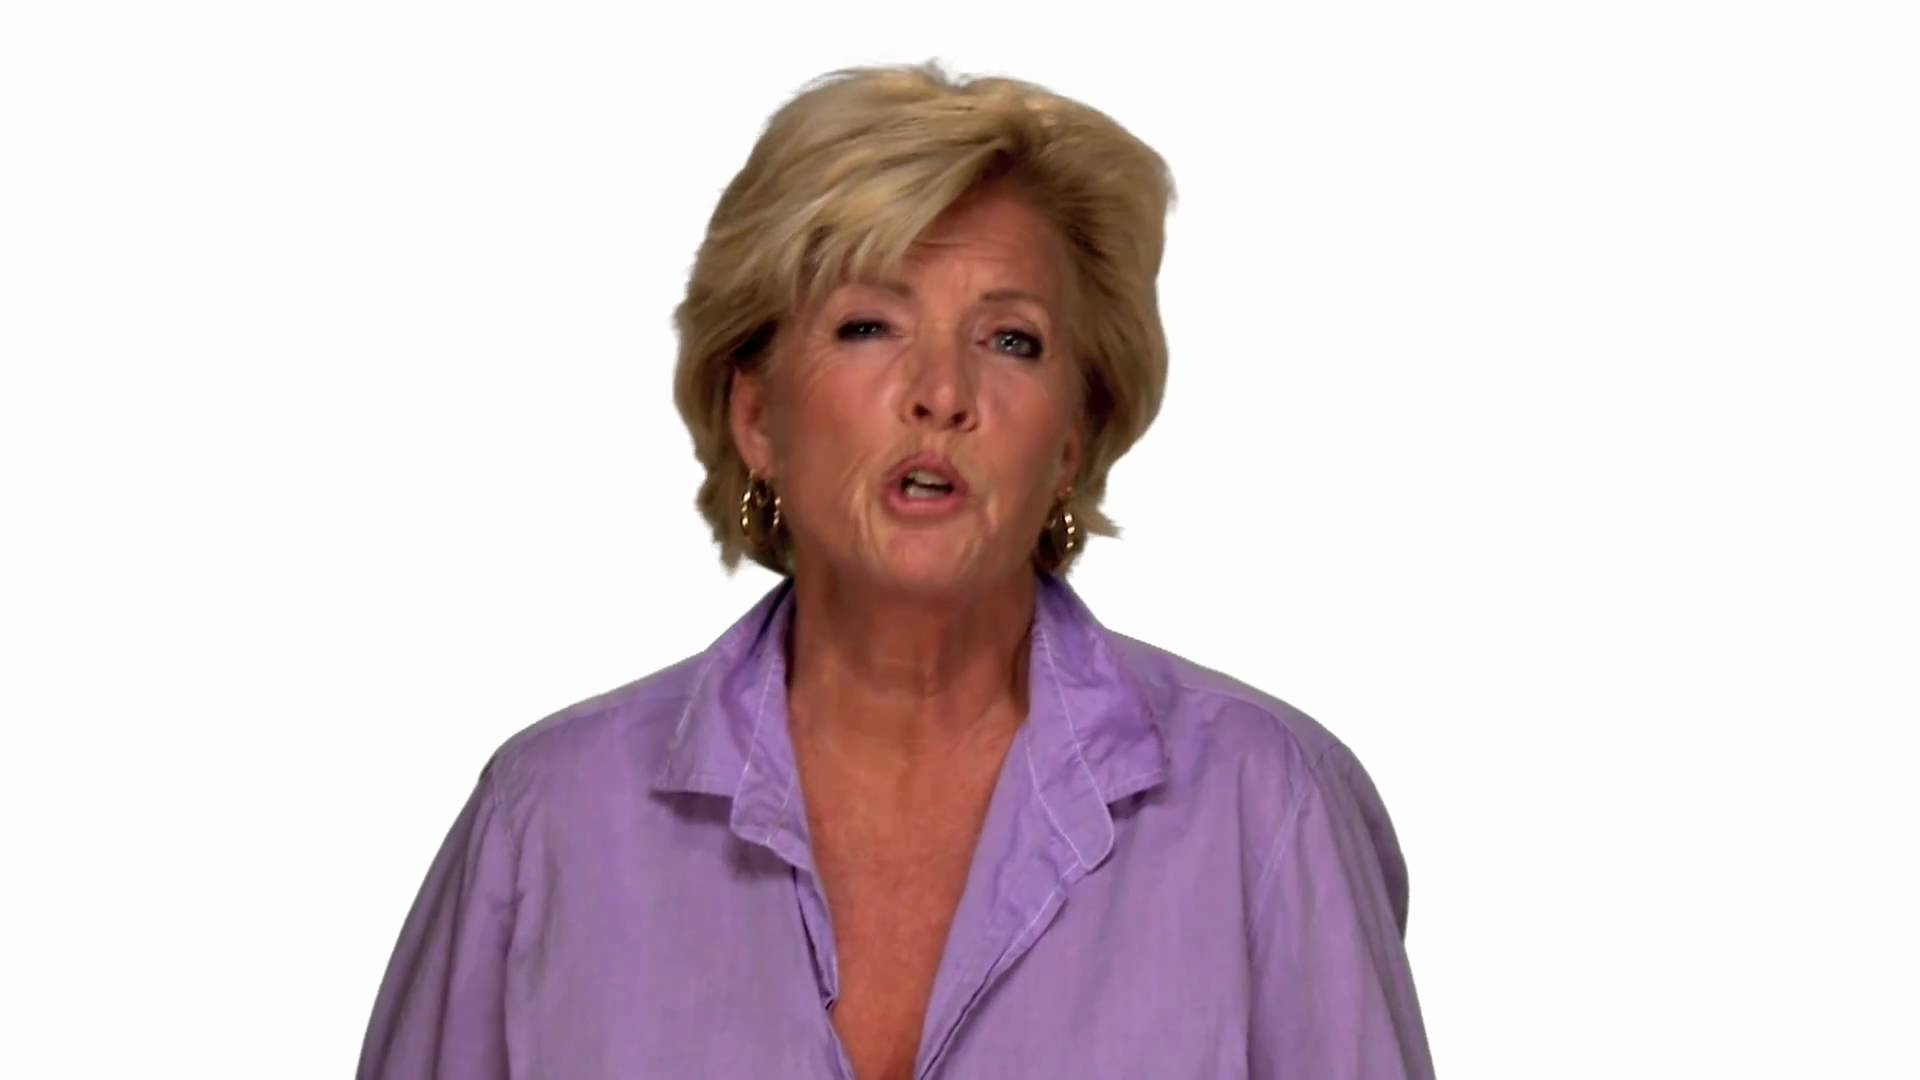 Meredith Baxter  Celebrity Wallpaper HD Wallpaper